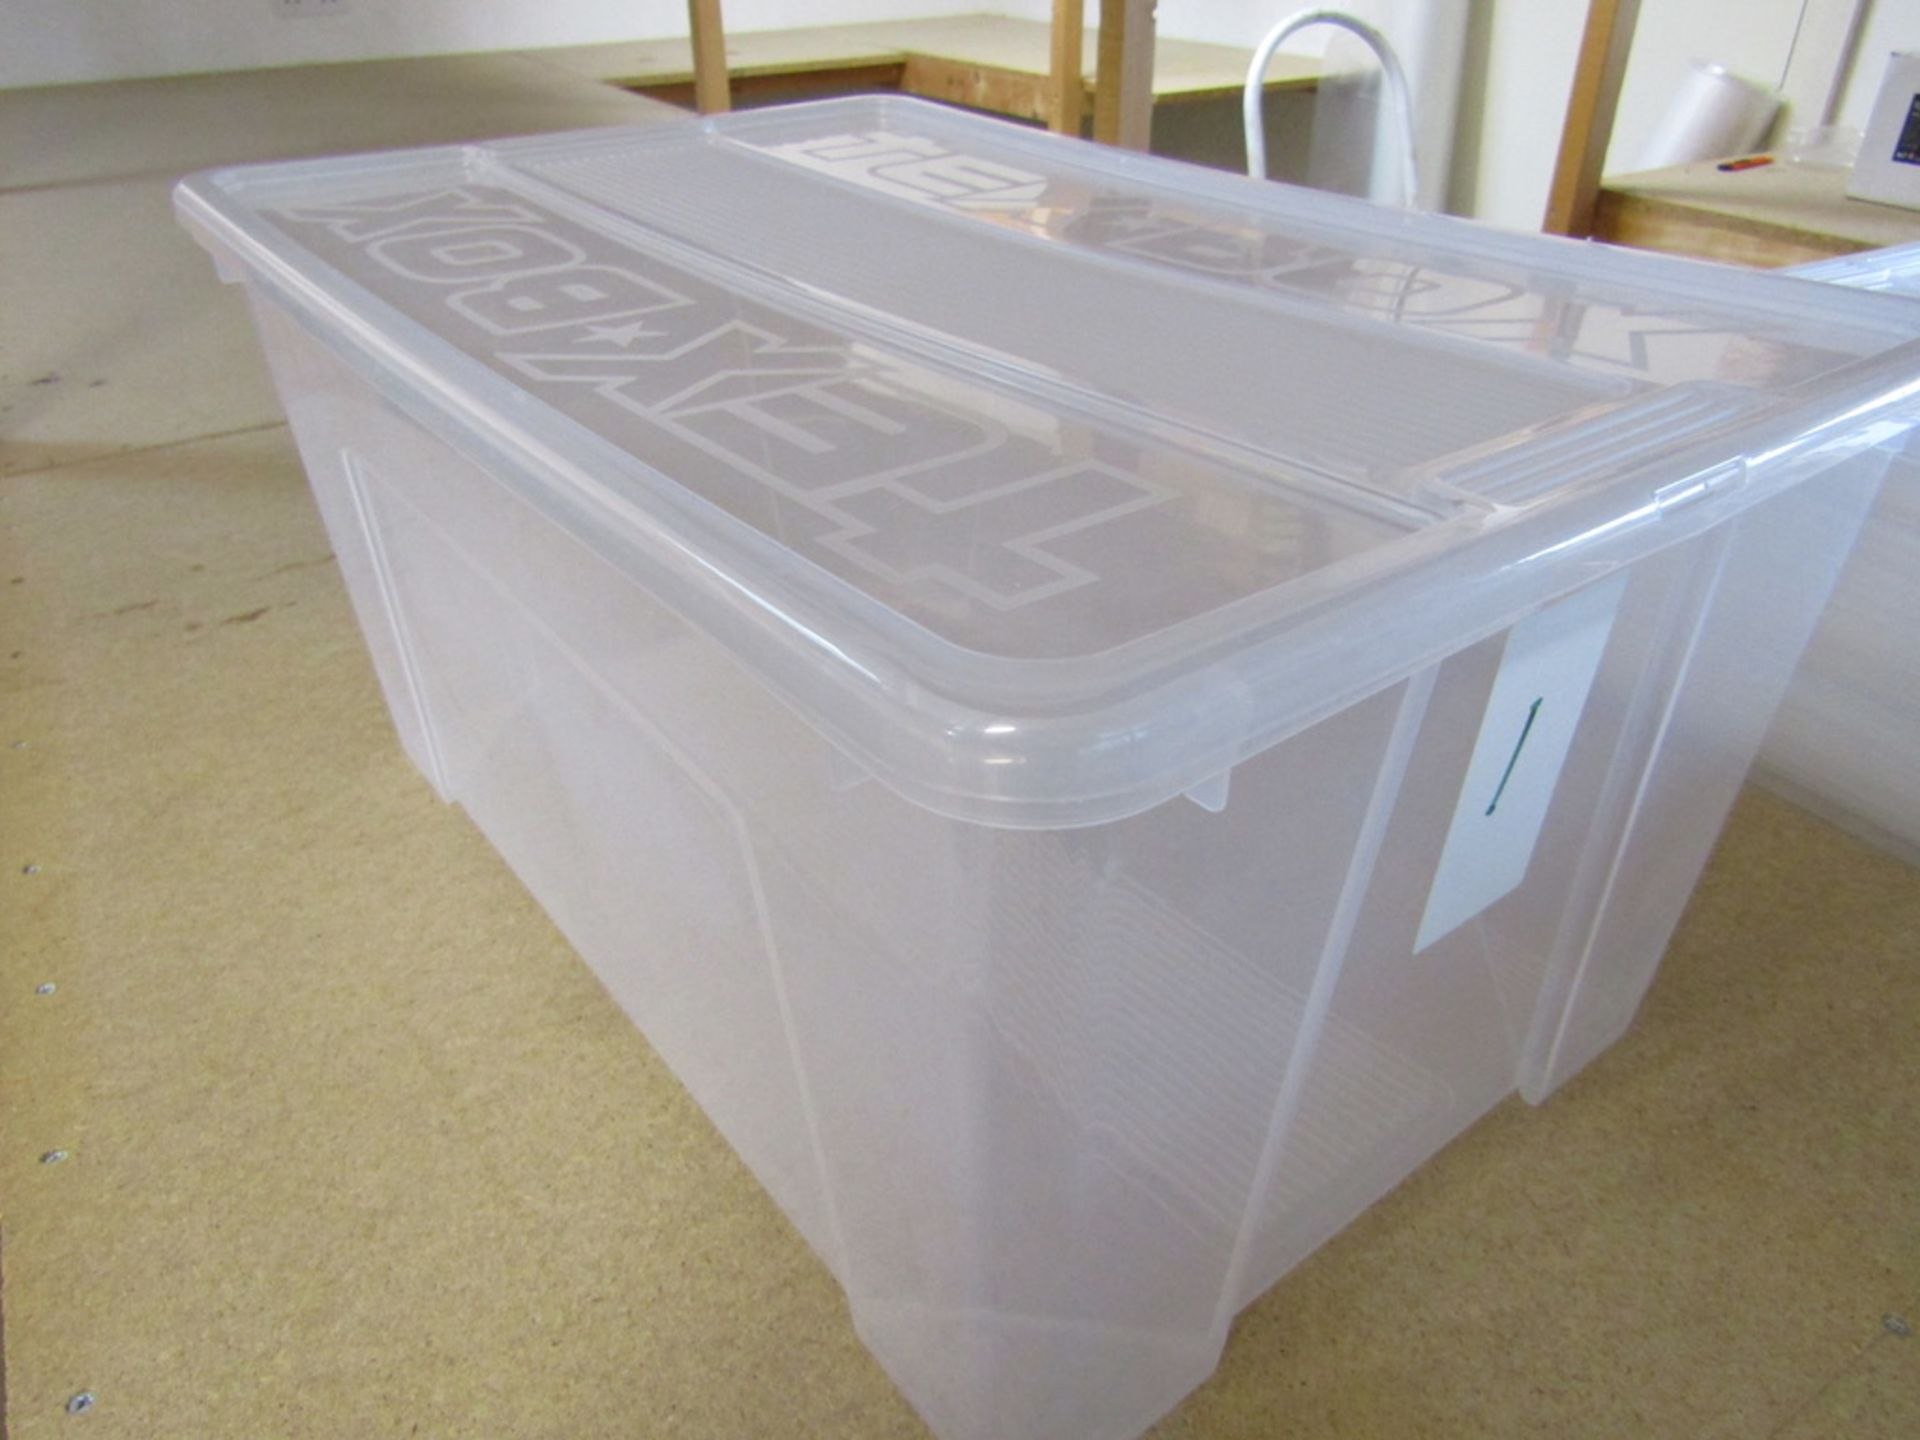 2 Bays of Racking with Storage Boxes. USED - Image 6 of 7